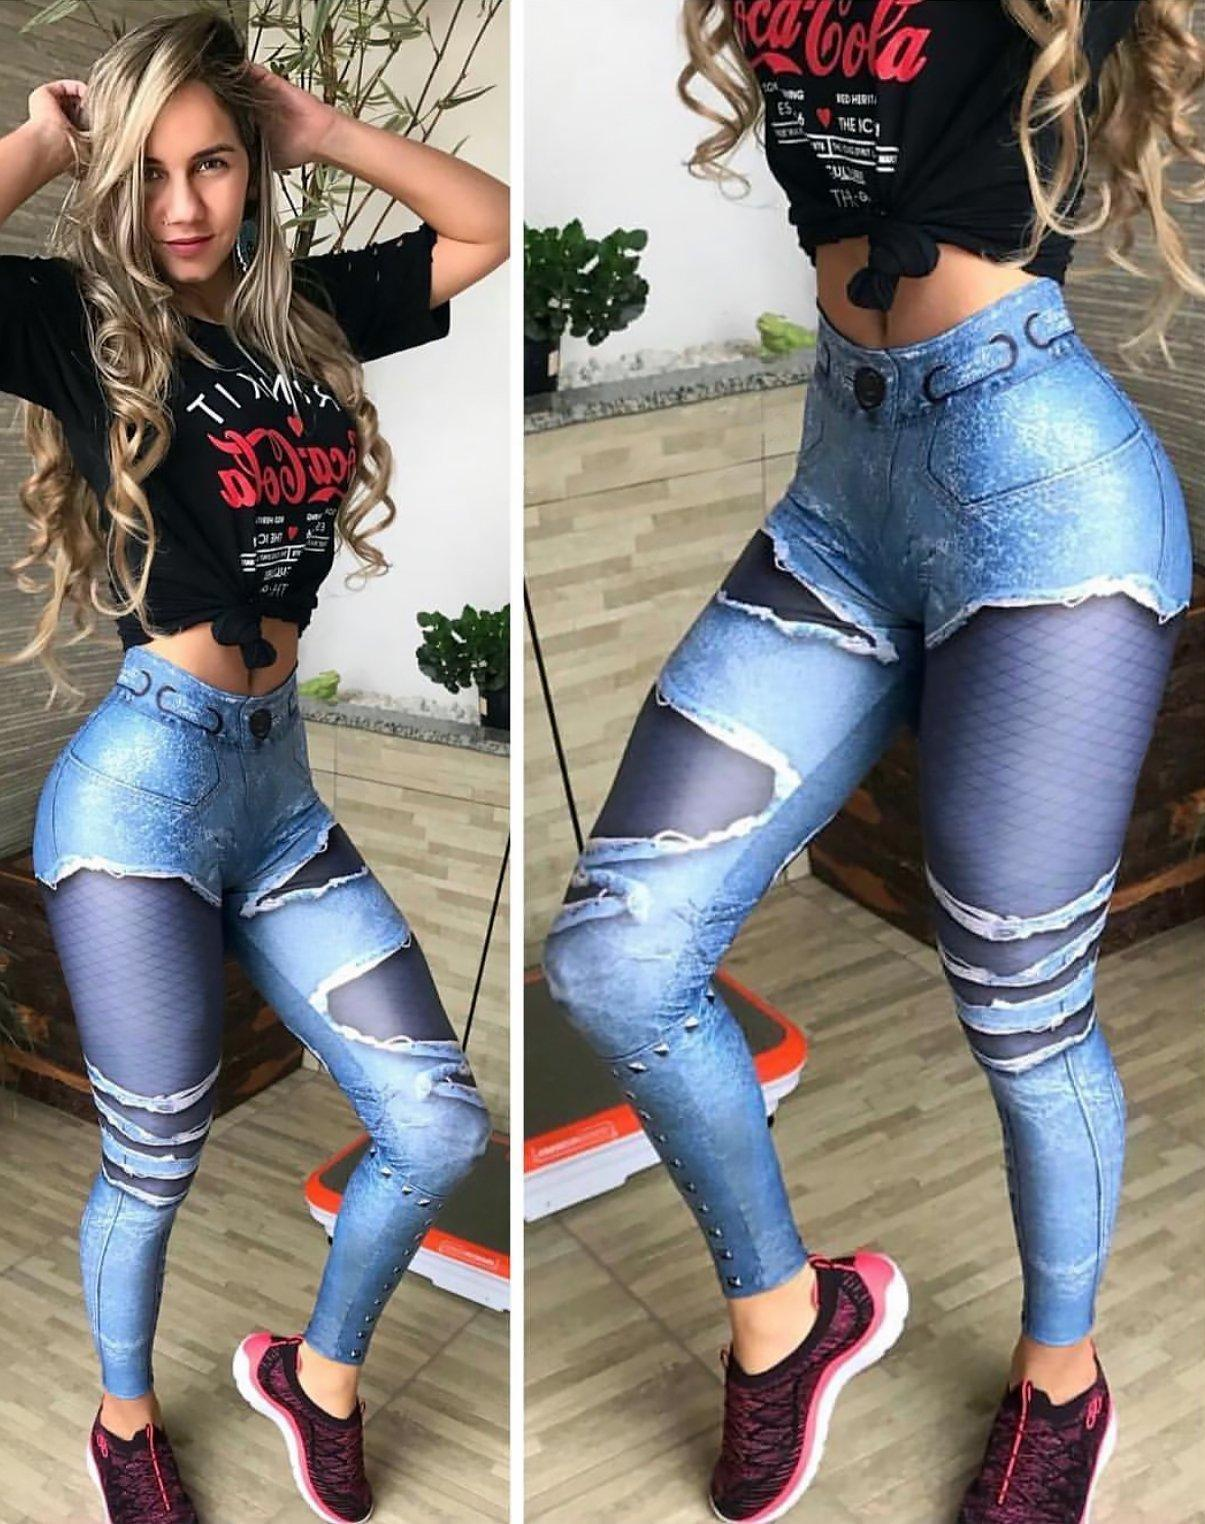 HOT SALE 🔥 - High Waist Designer Ripped Jeans Print Push Up Leggings - SAVE $50